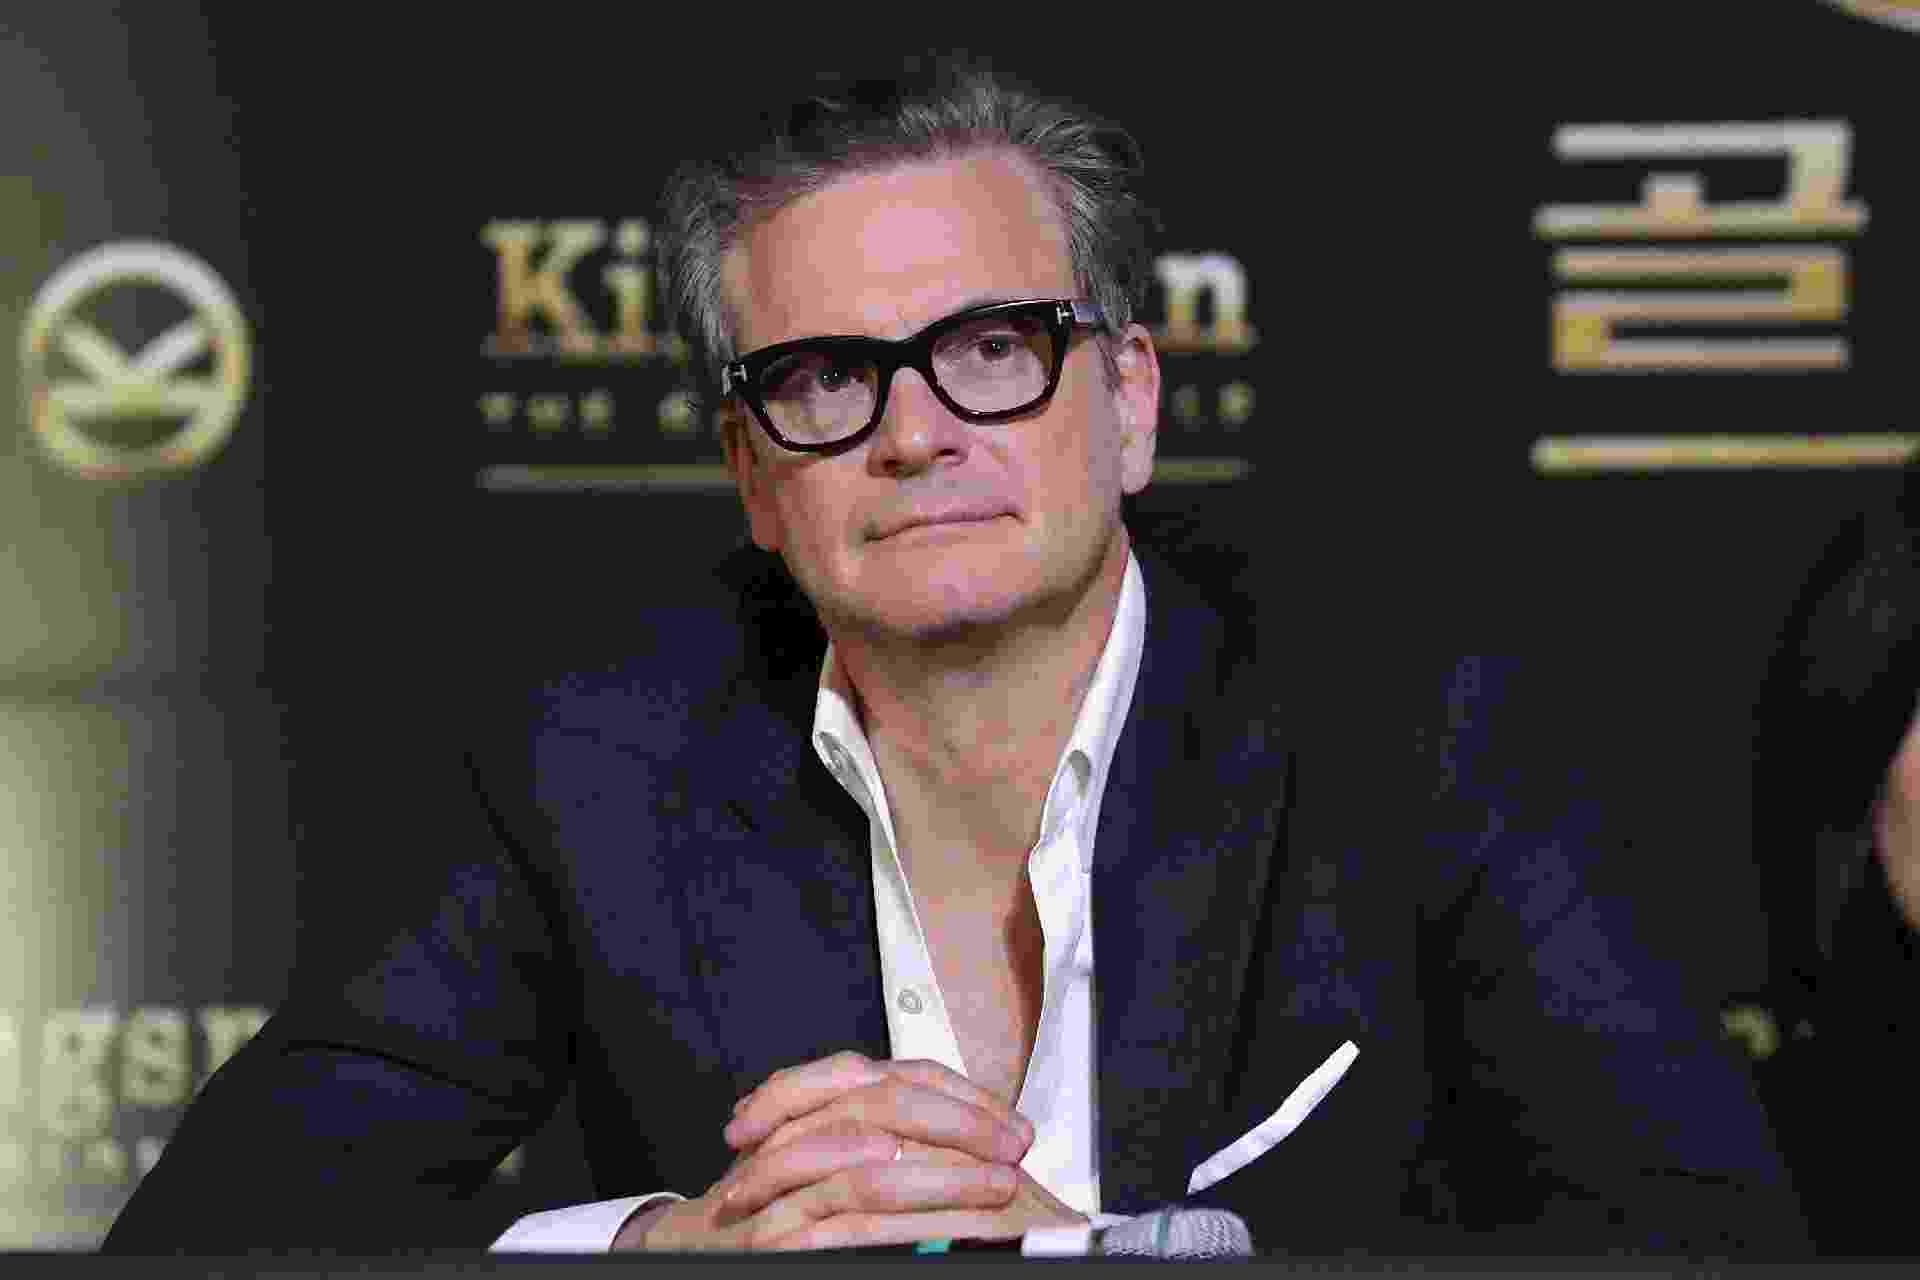 Colin Firth - Getty Images